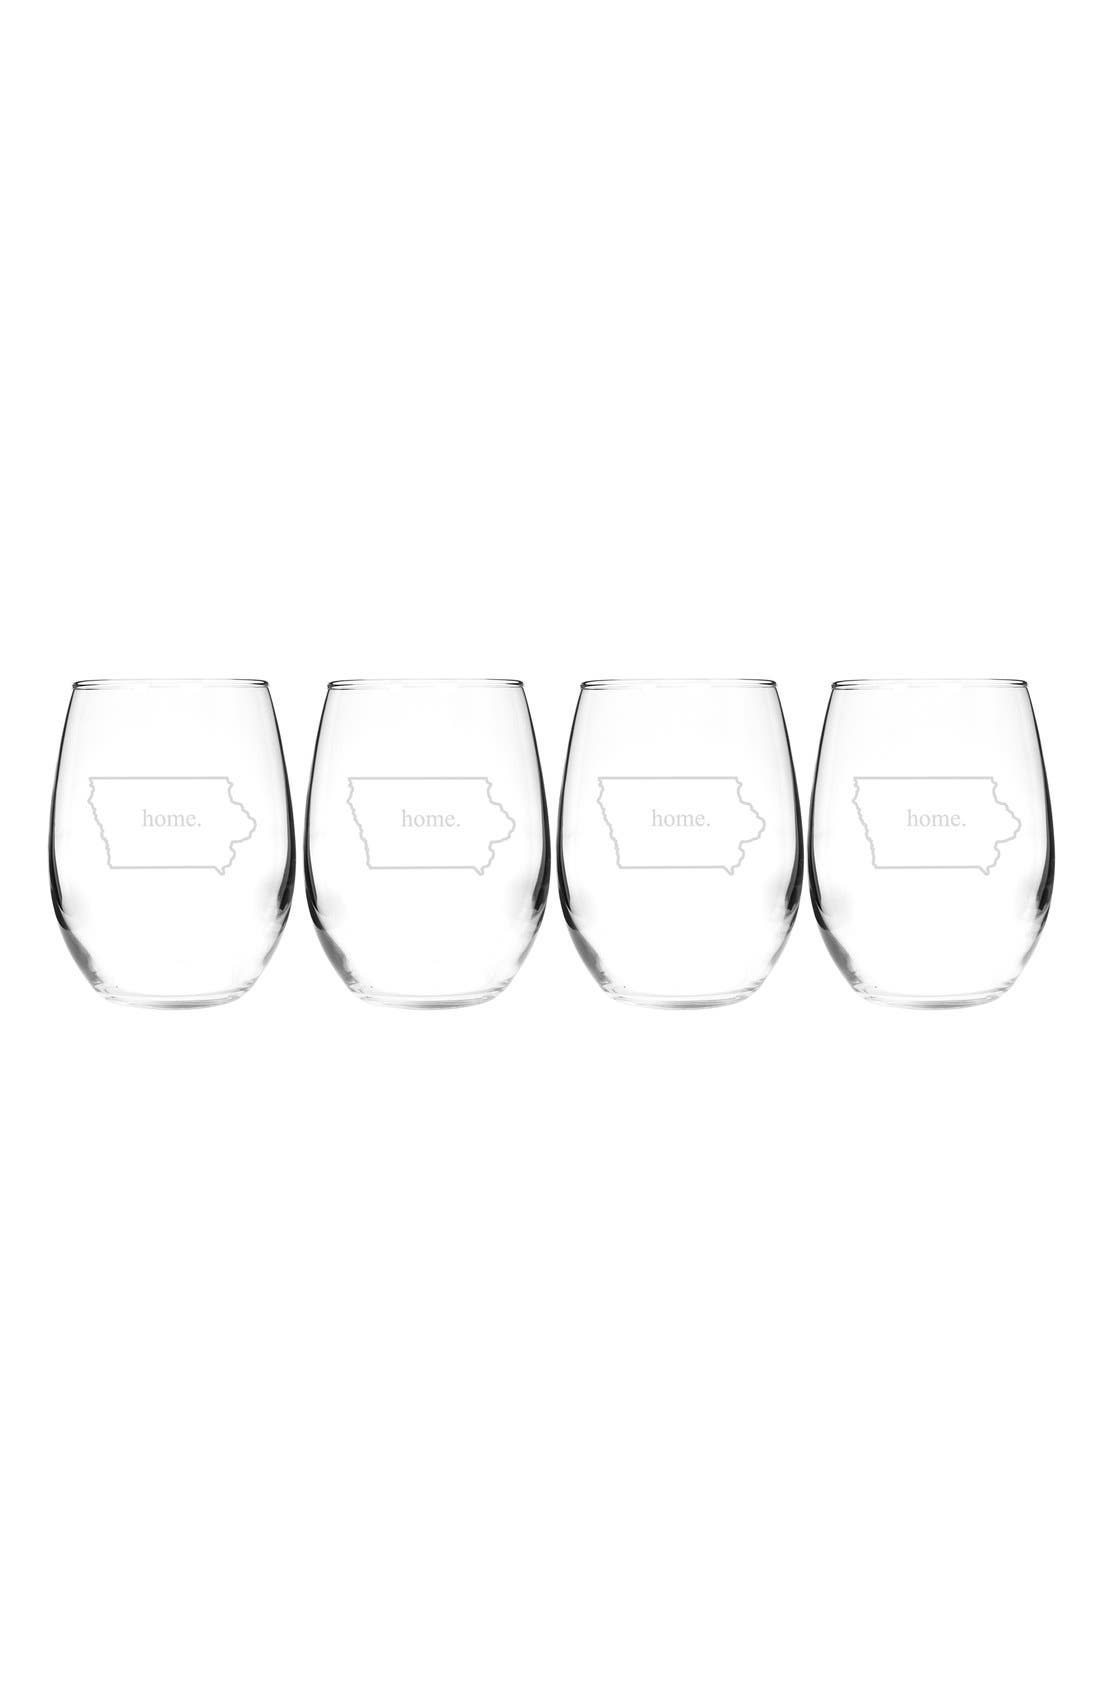 Home State Set of 4 Stemless Wine Glasses,                             Main thumbnail 13, color,